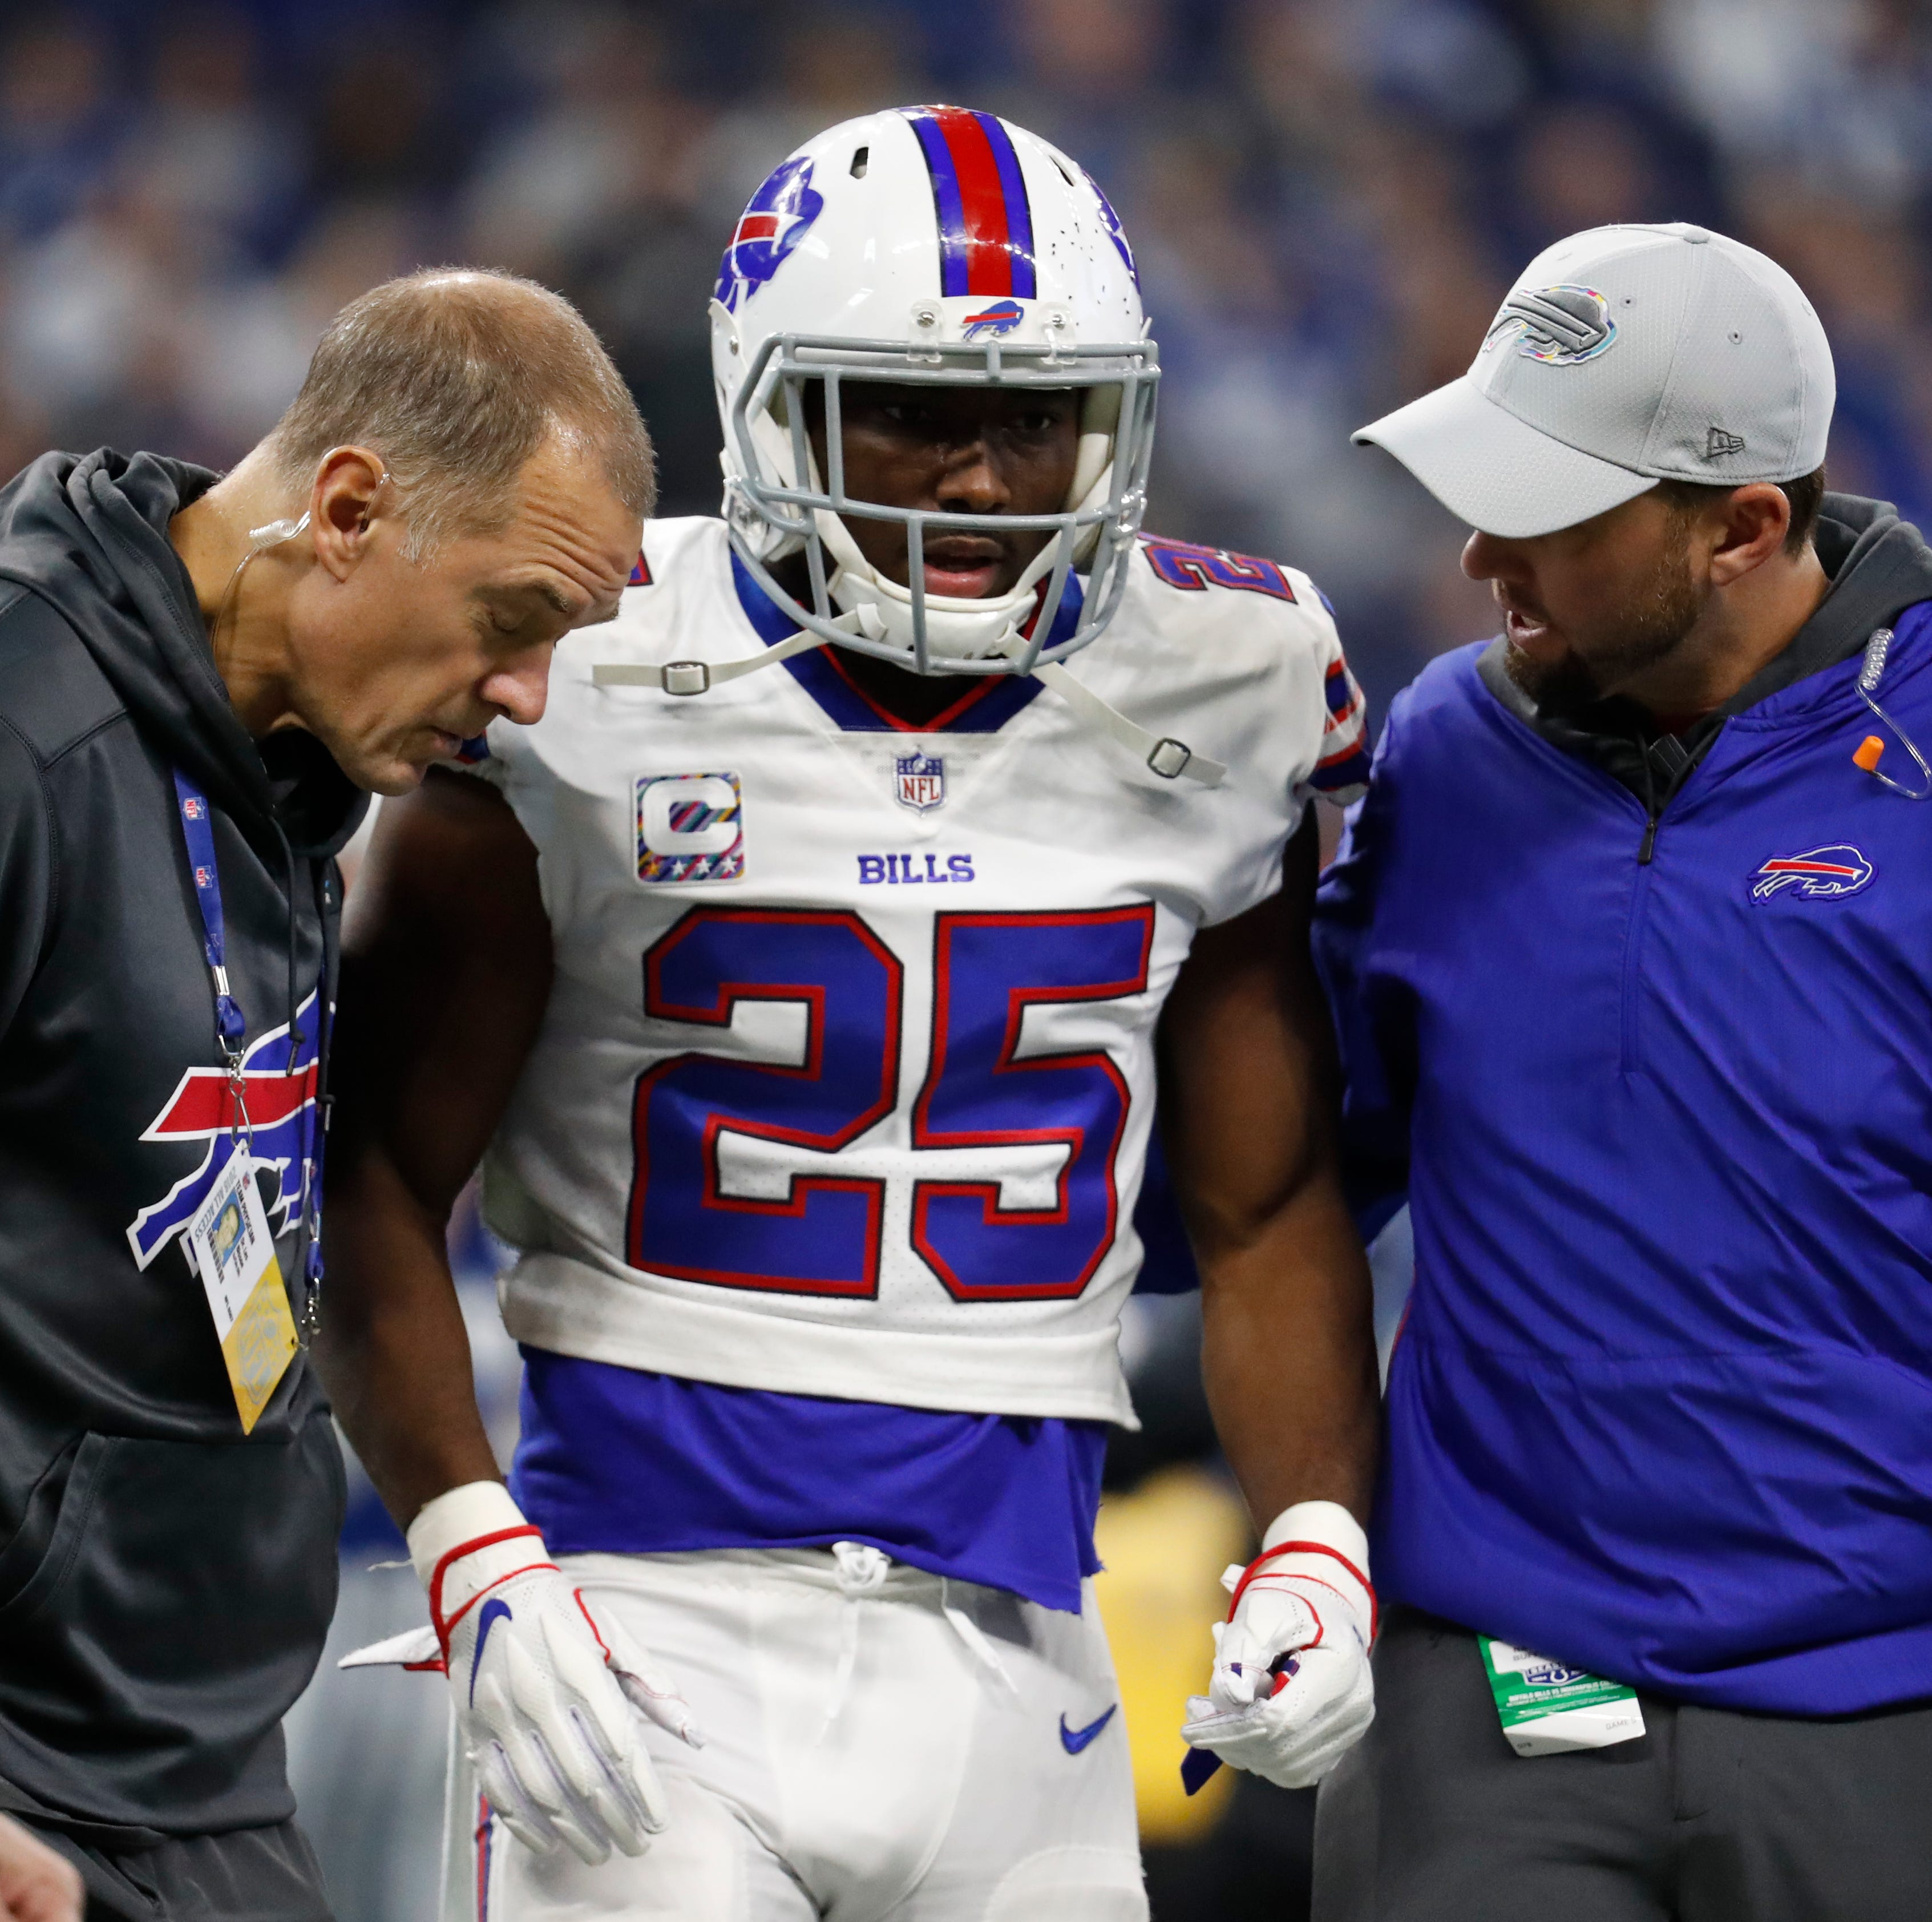 Buffalo Bills running back LeSean McCoy injured against Colts